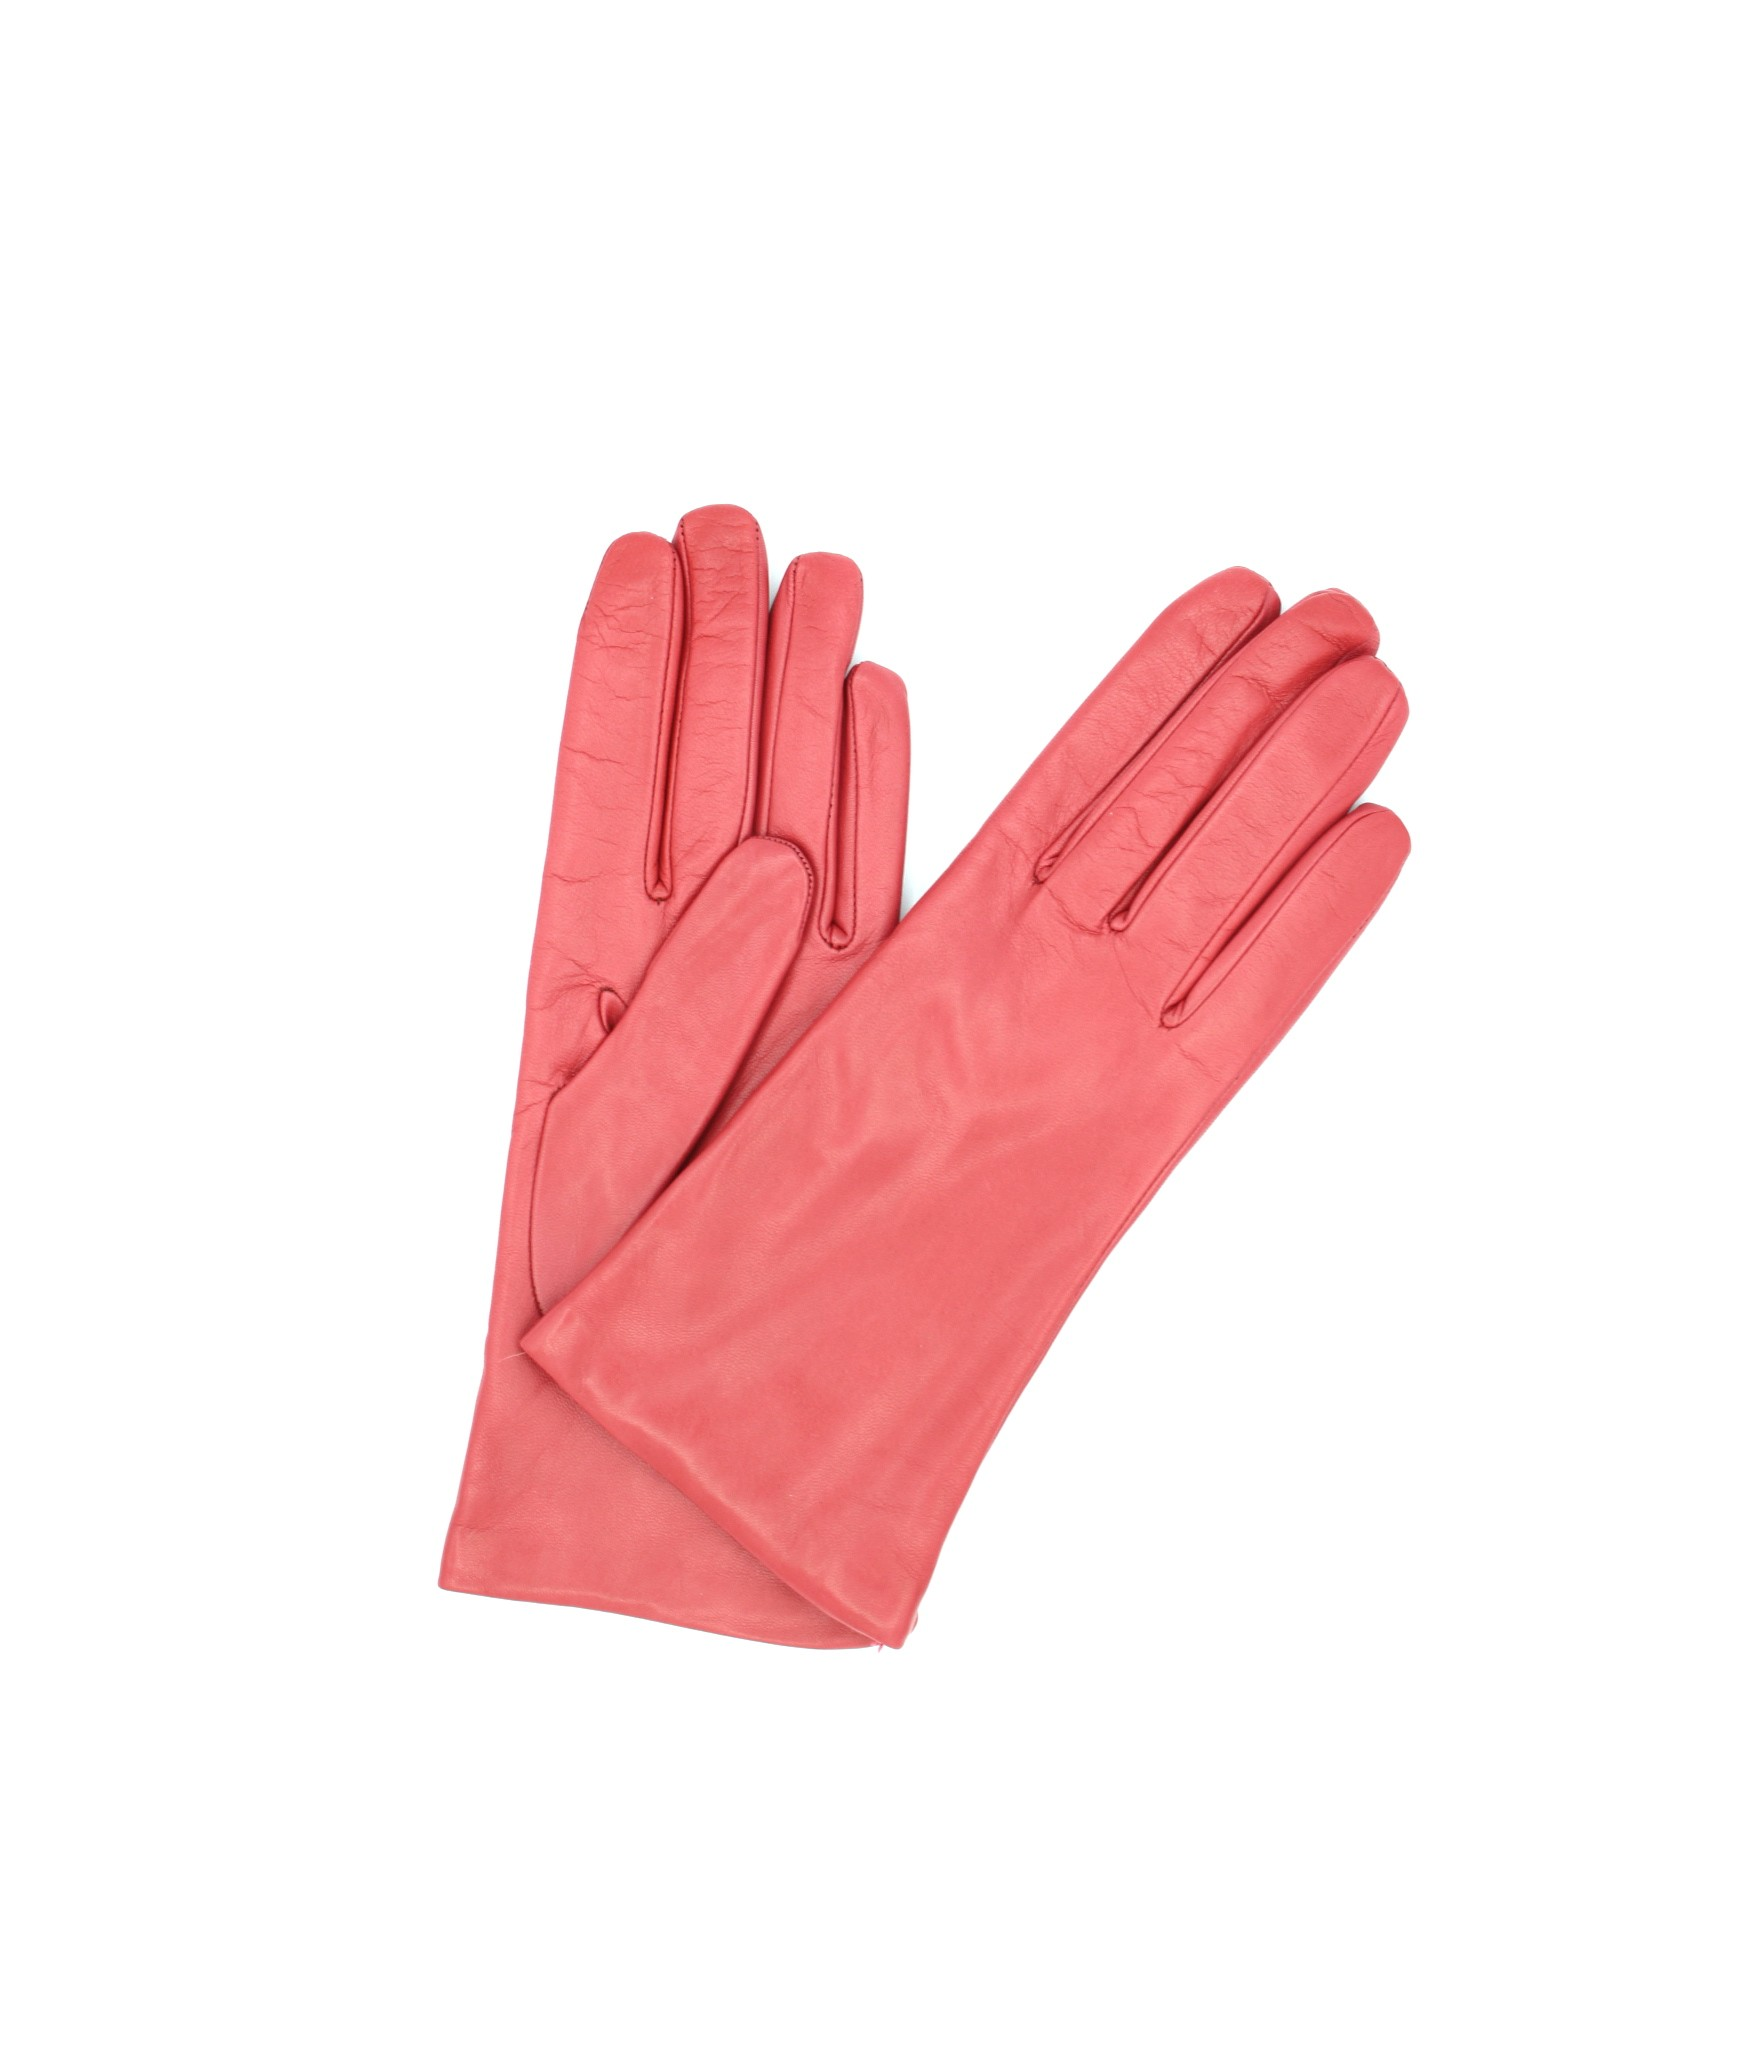 Nappa leather gloves Cashmere lined Coral Pink Sermoneta Gloves